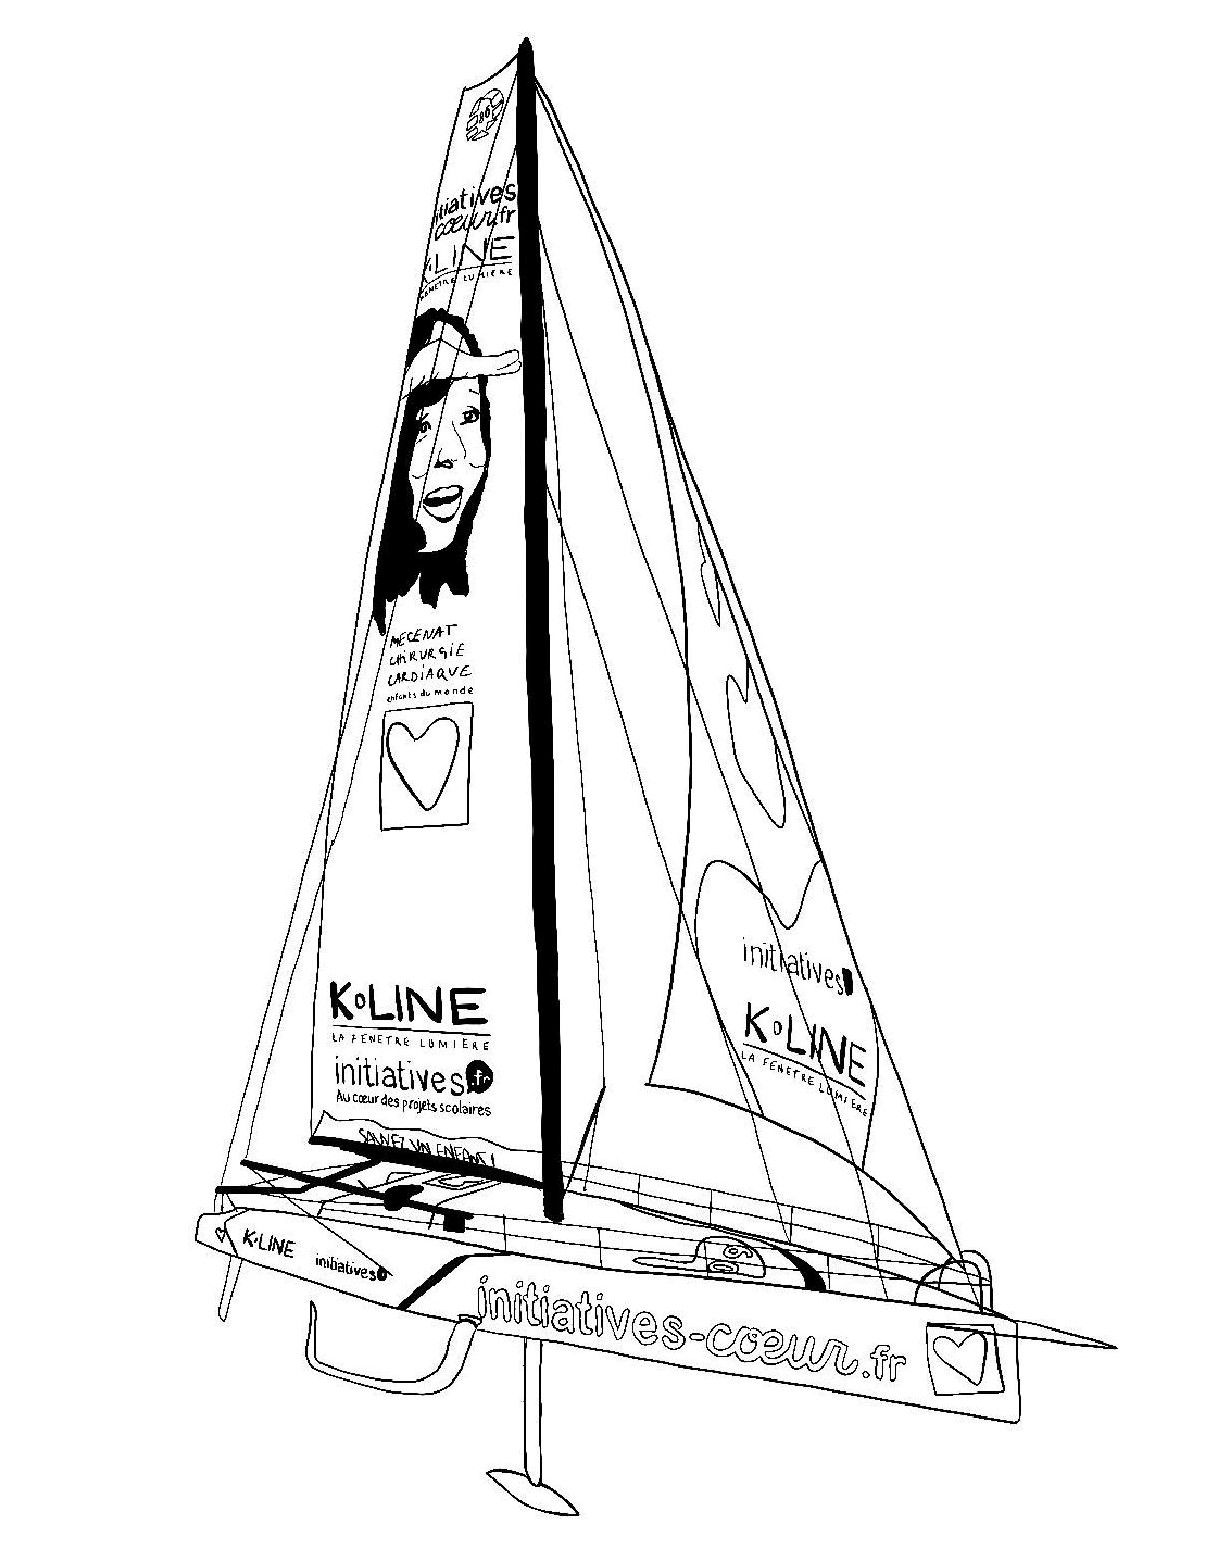 Vendee Globe Voilier By Nathalie Trukbidule Massey Lefebvre On Genially